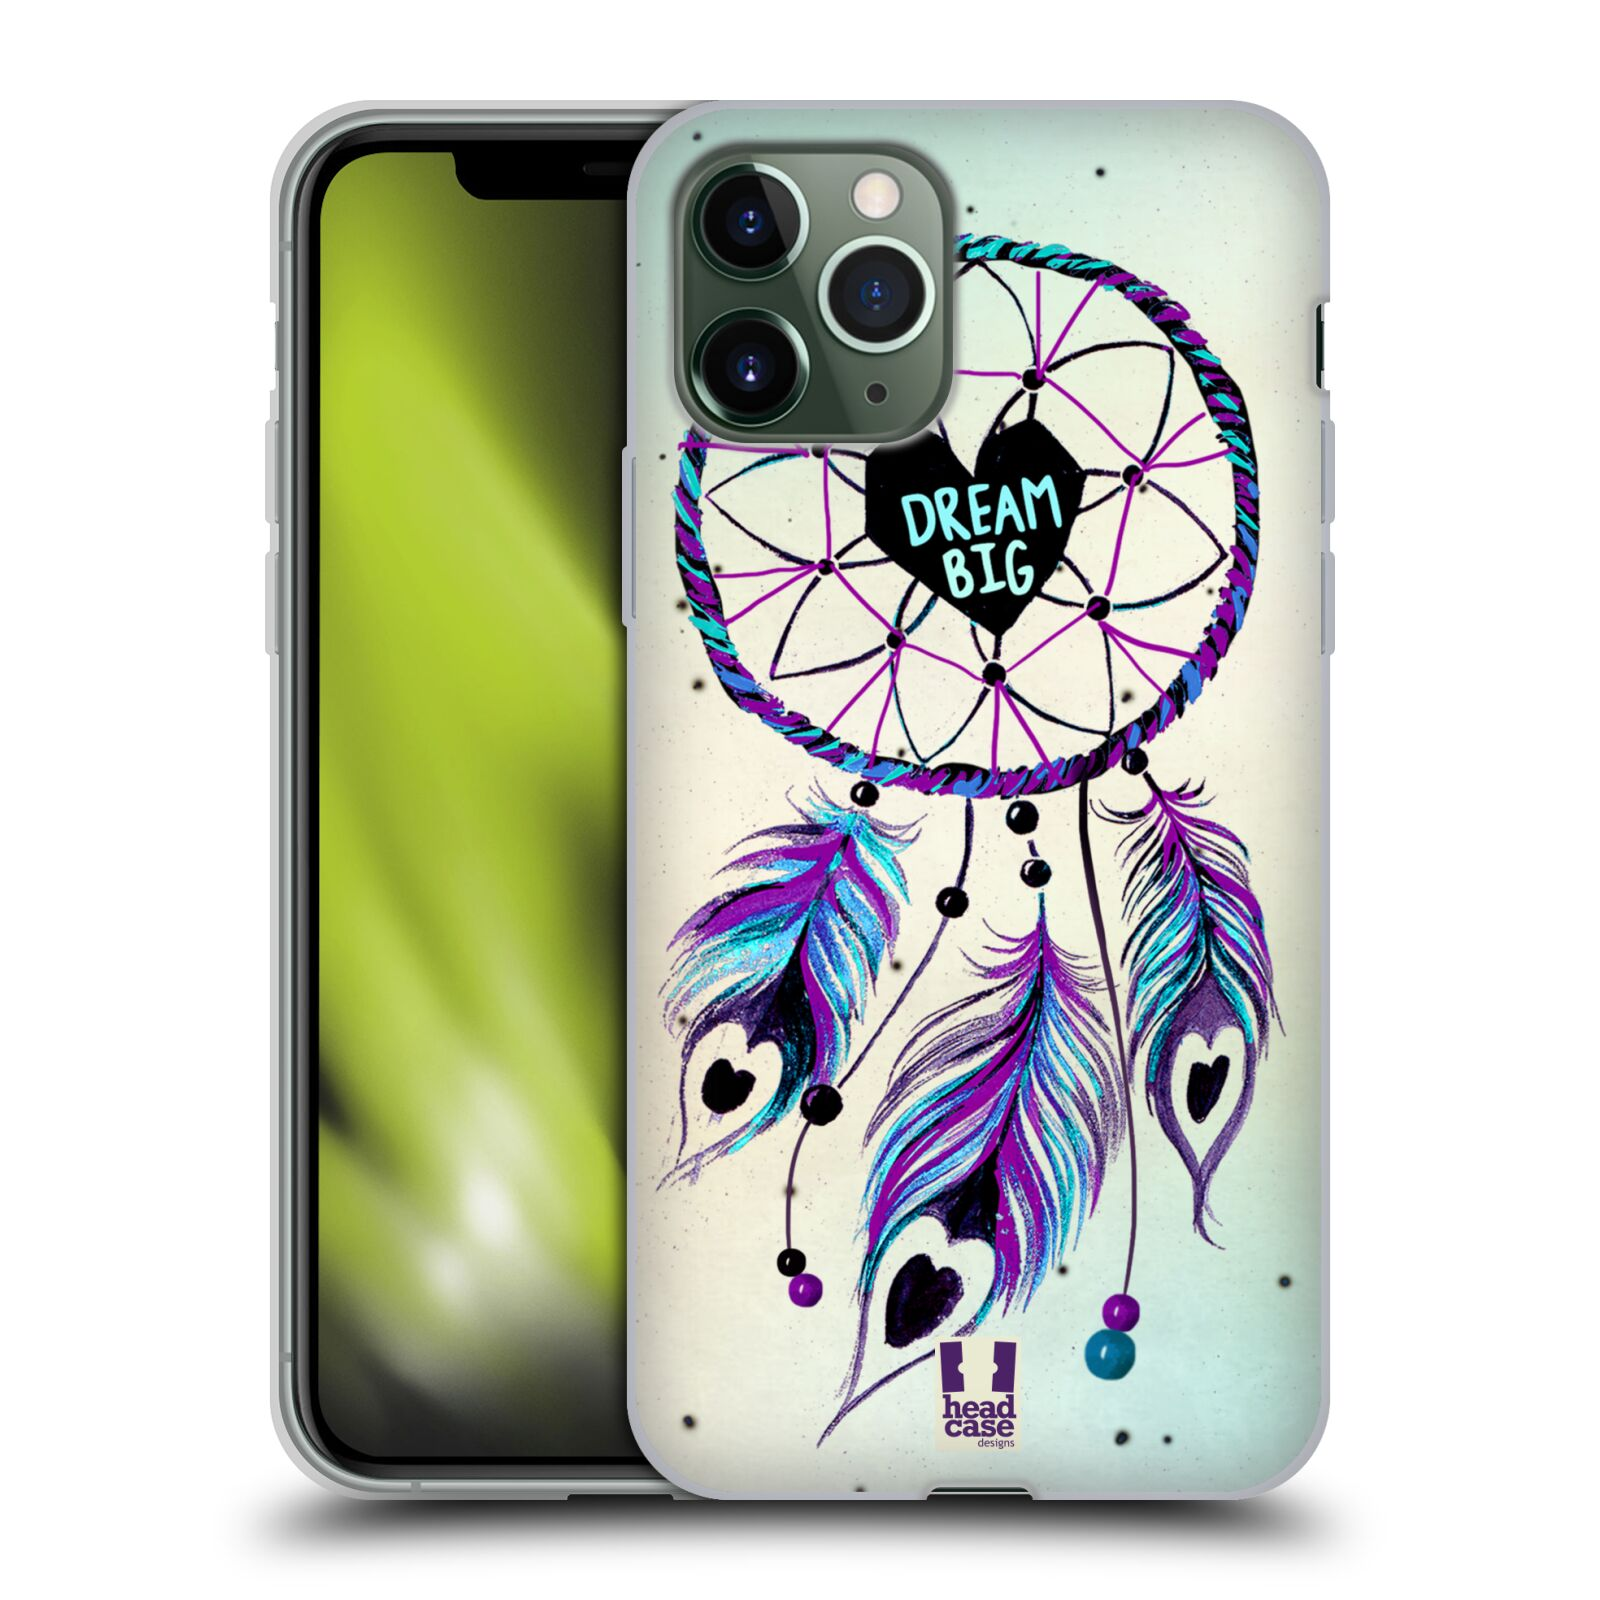 iphone obal x , Silikonové pouzdro na mobil Apple iPhone 11 Pro - Head Case - Lapač Assorted Dream Big Srdce